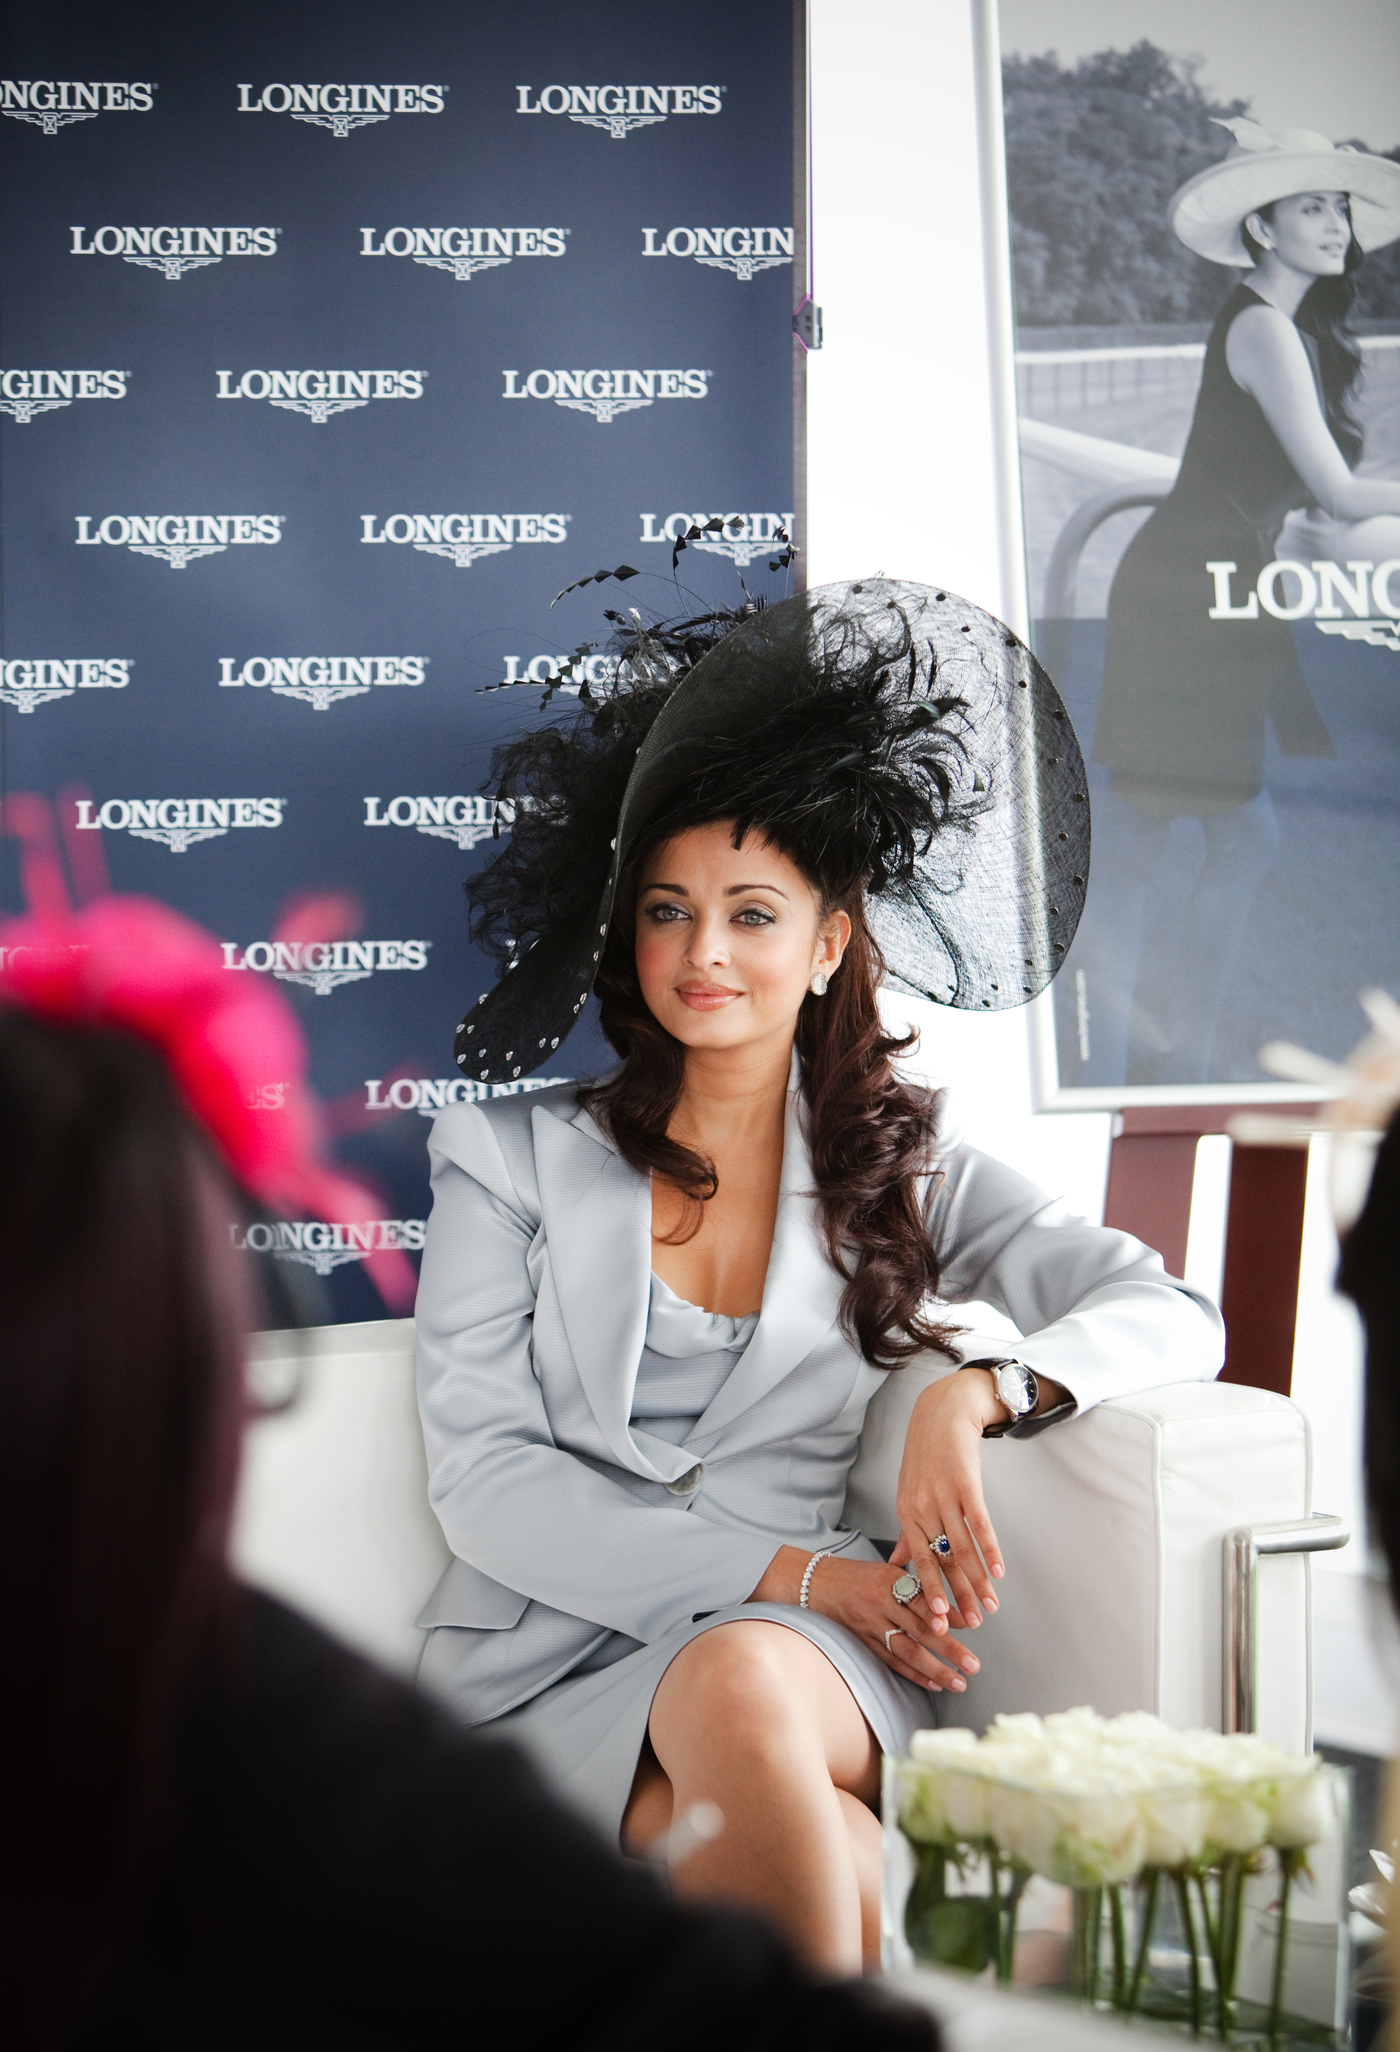 Longines Flat Racing Event: Longines Ambassador of Elegance Aishwarya Rai Bachchan lights up Royal Ascot with her radiant presence 9